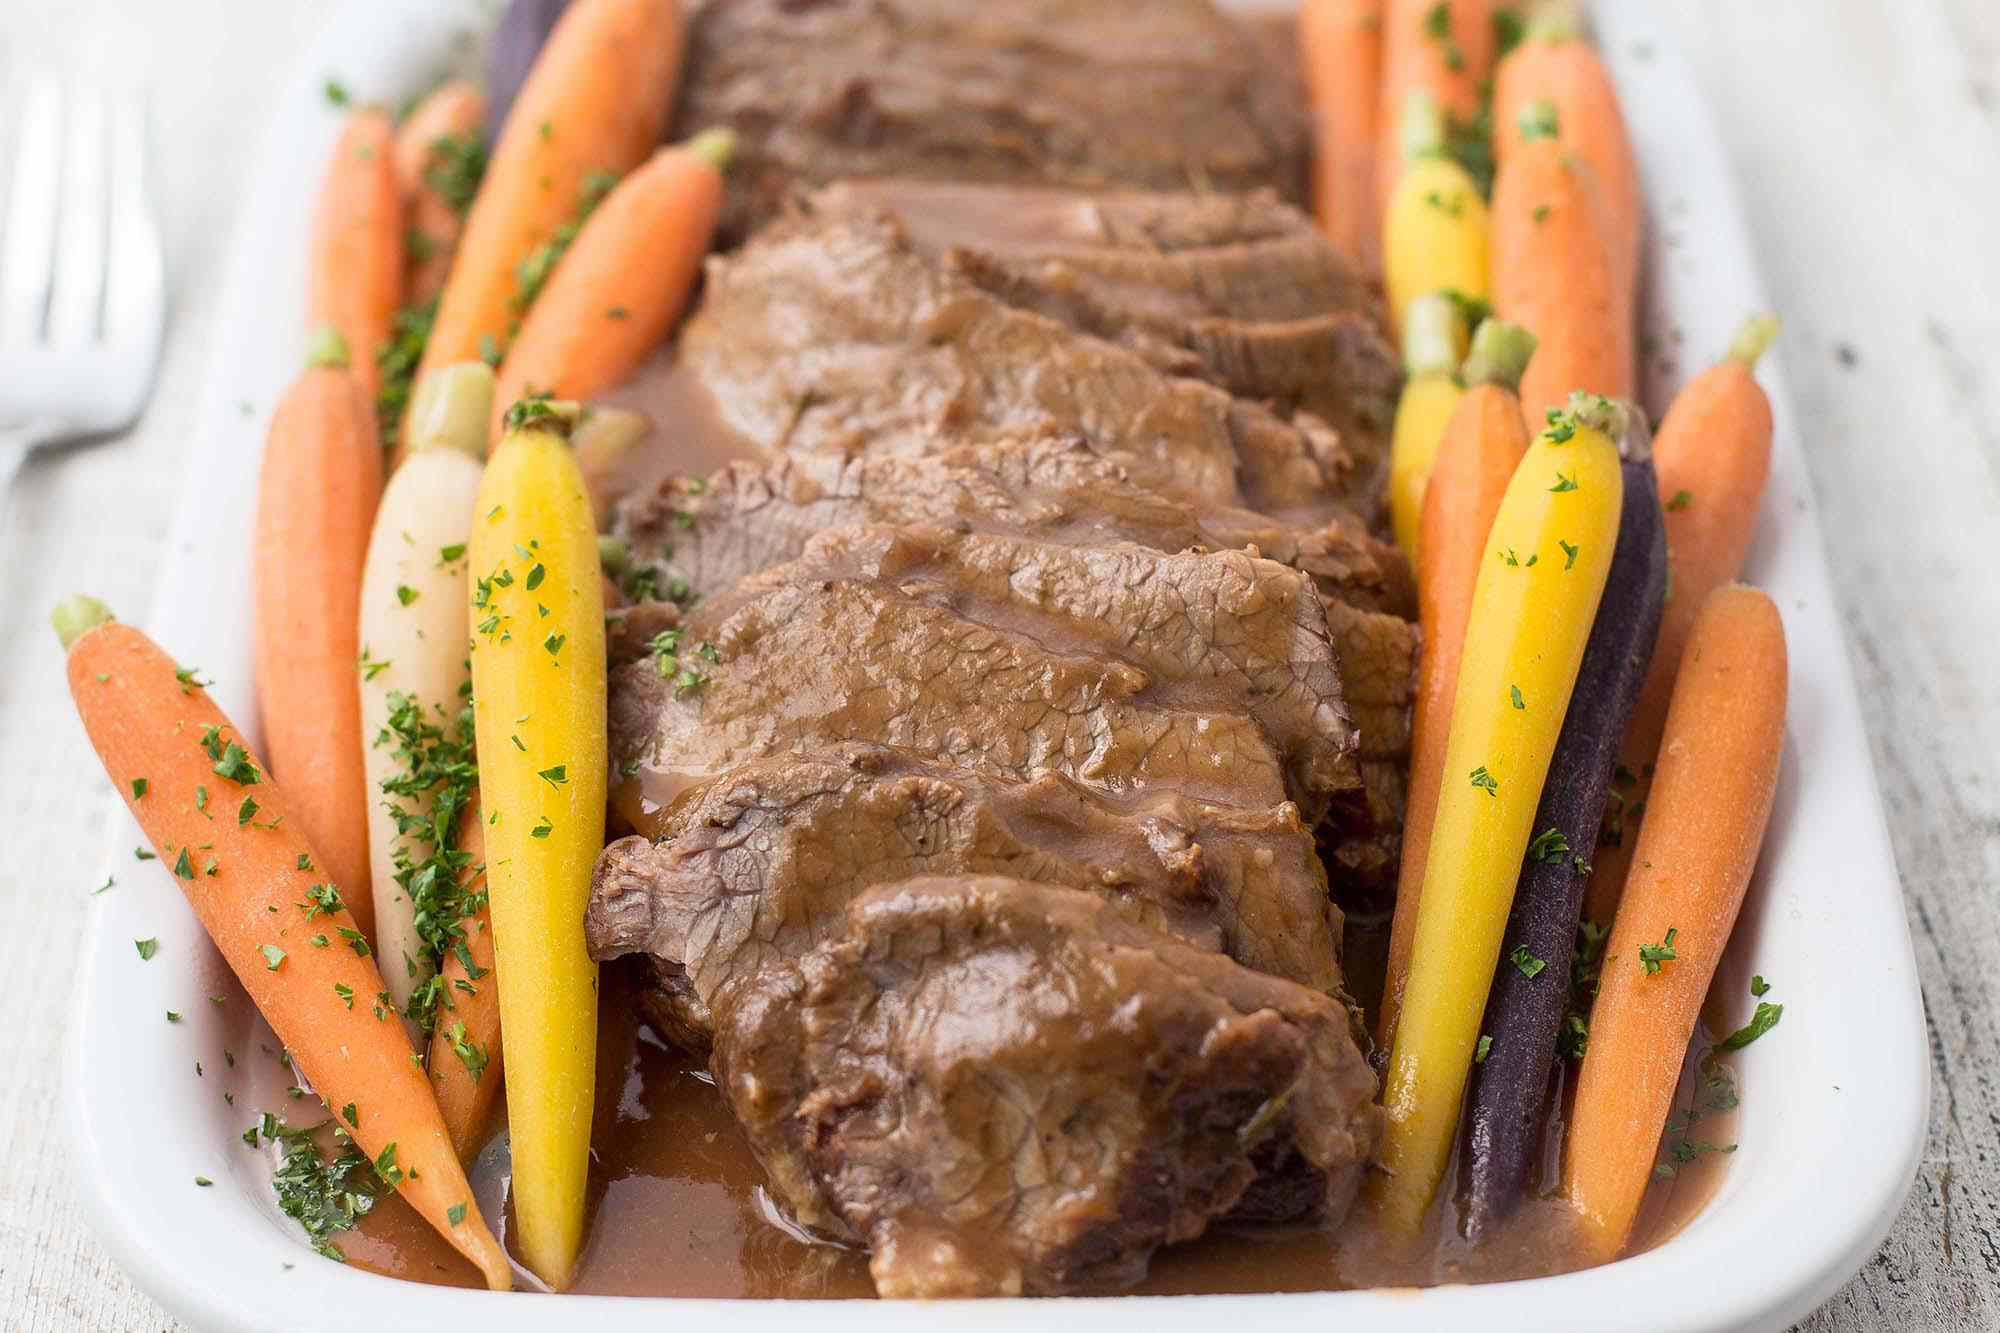 Sliced Beef Brisket with sauce and carrots